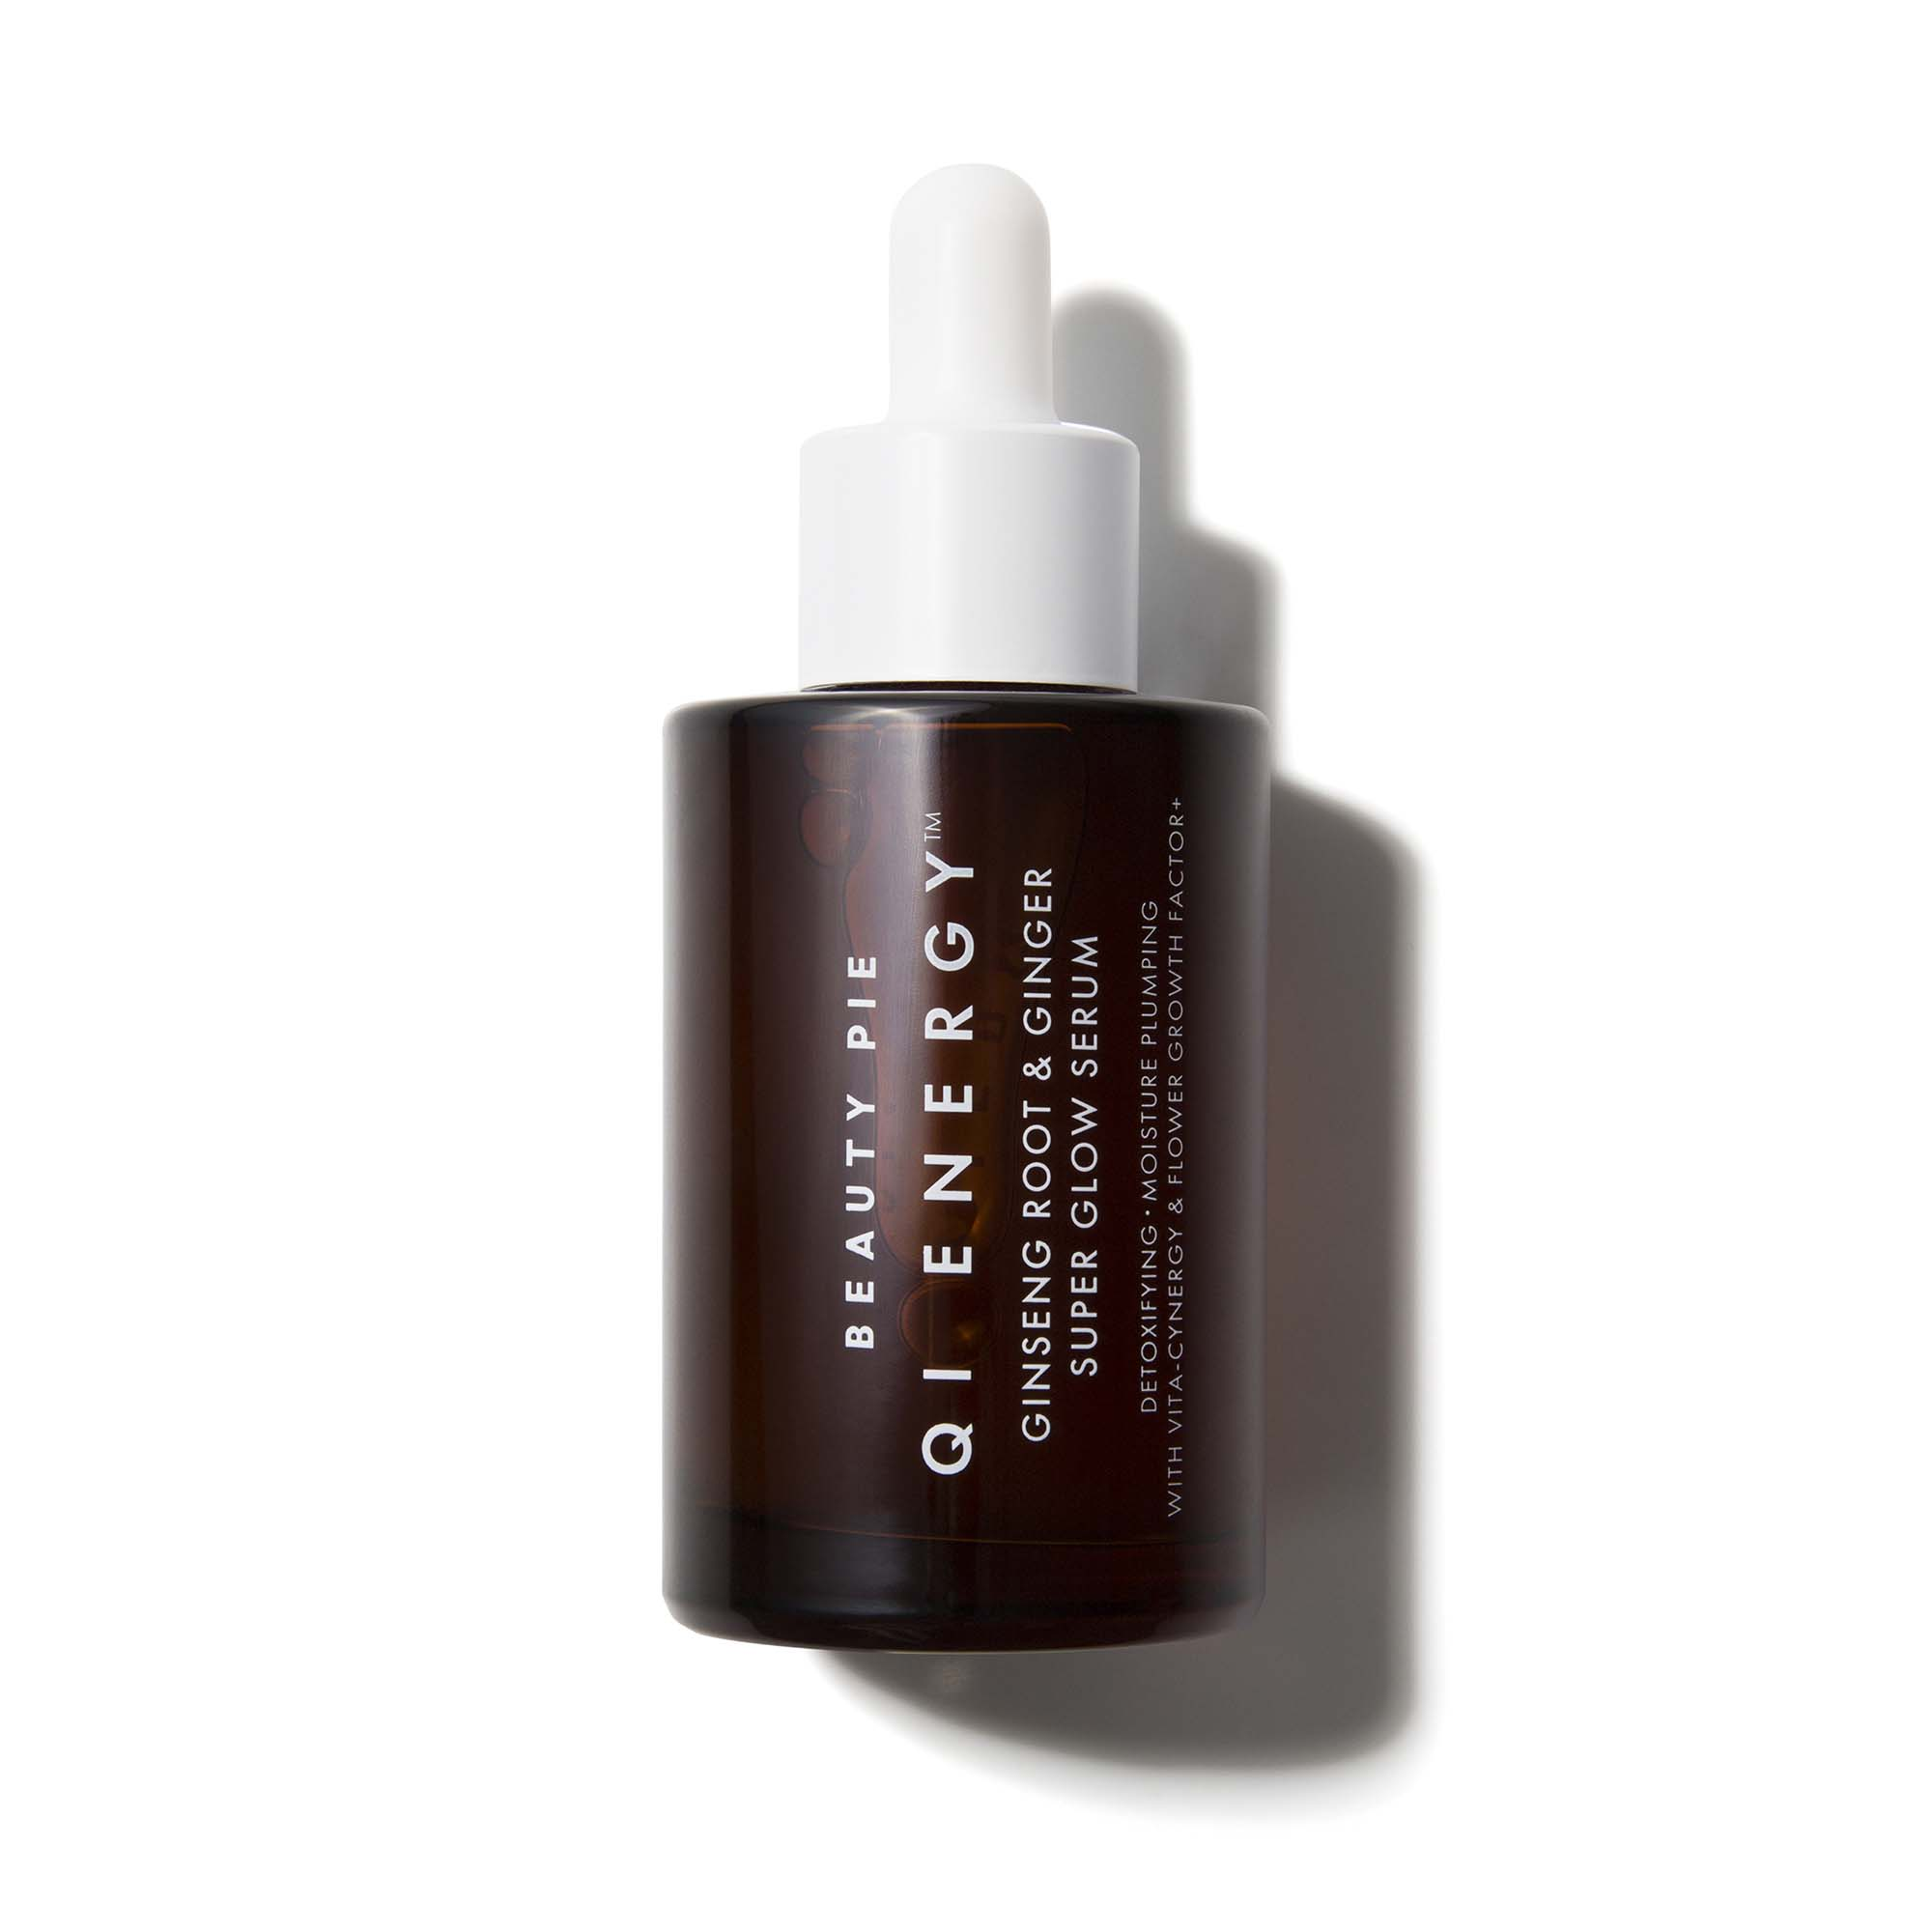 Qi Energy Ginseng Root & Ginger Super Glow Serum by Beauty Pie